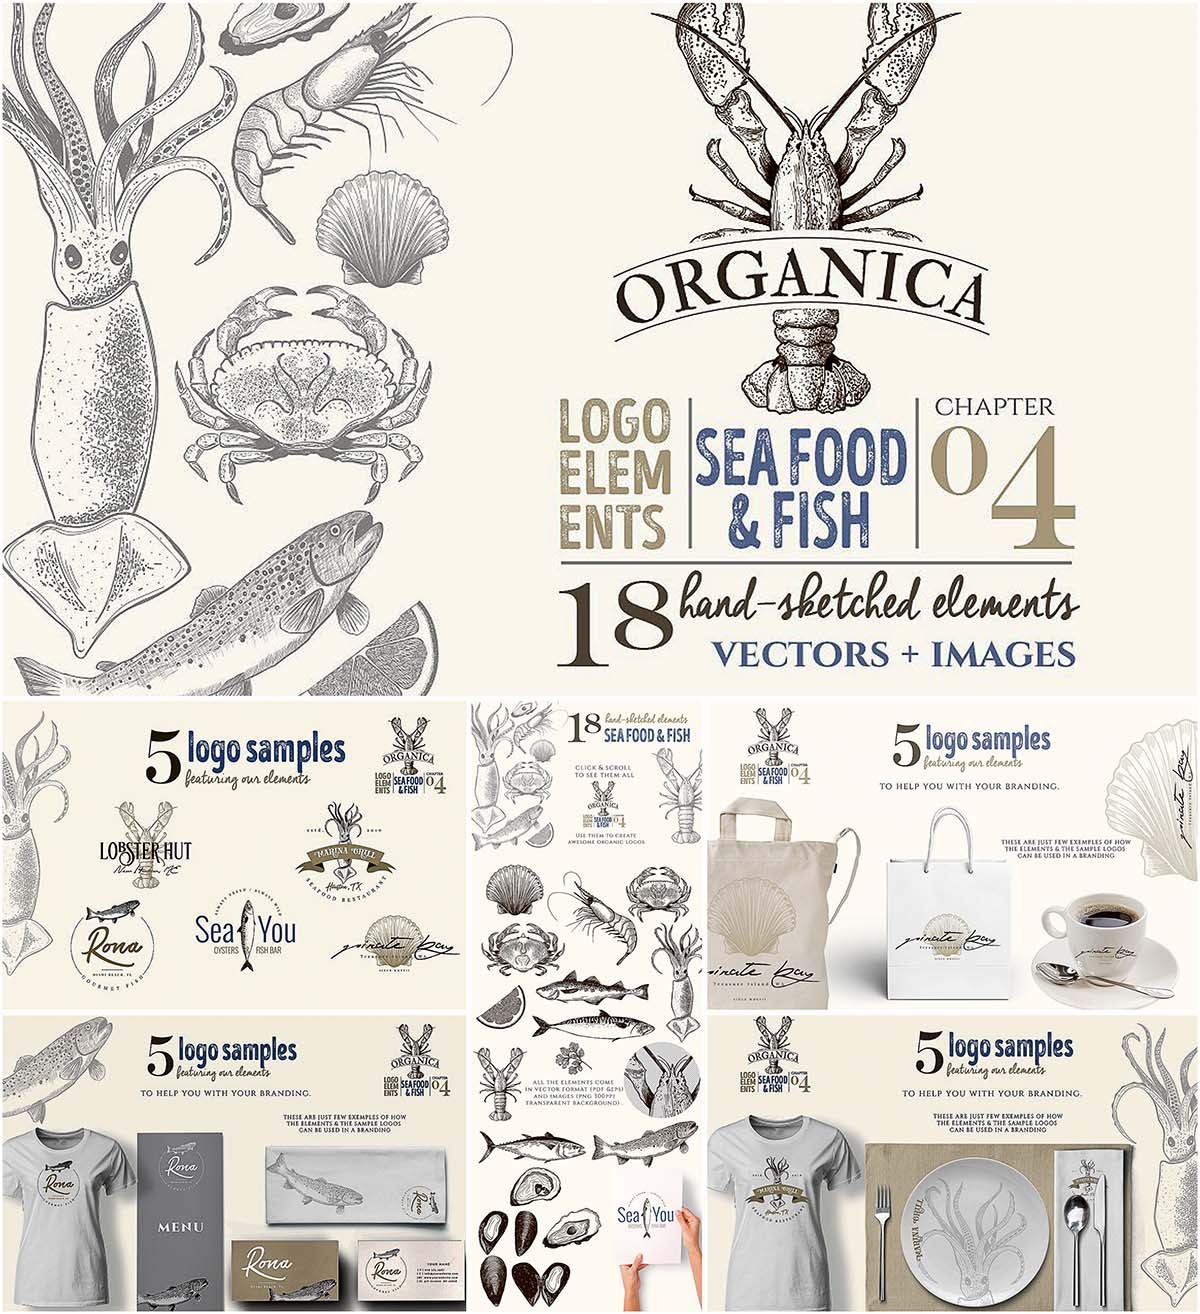 Hand sketched organic logo seafood